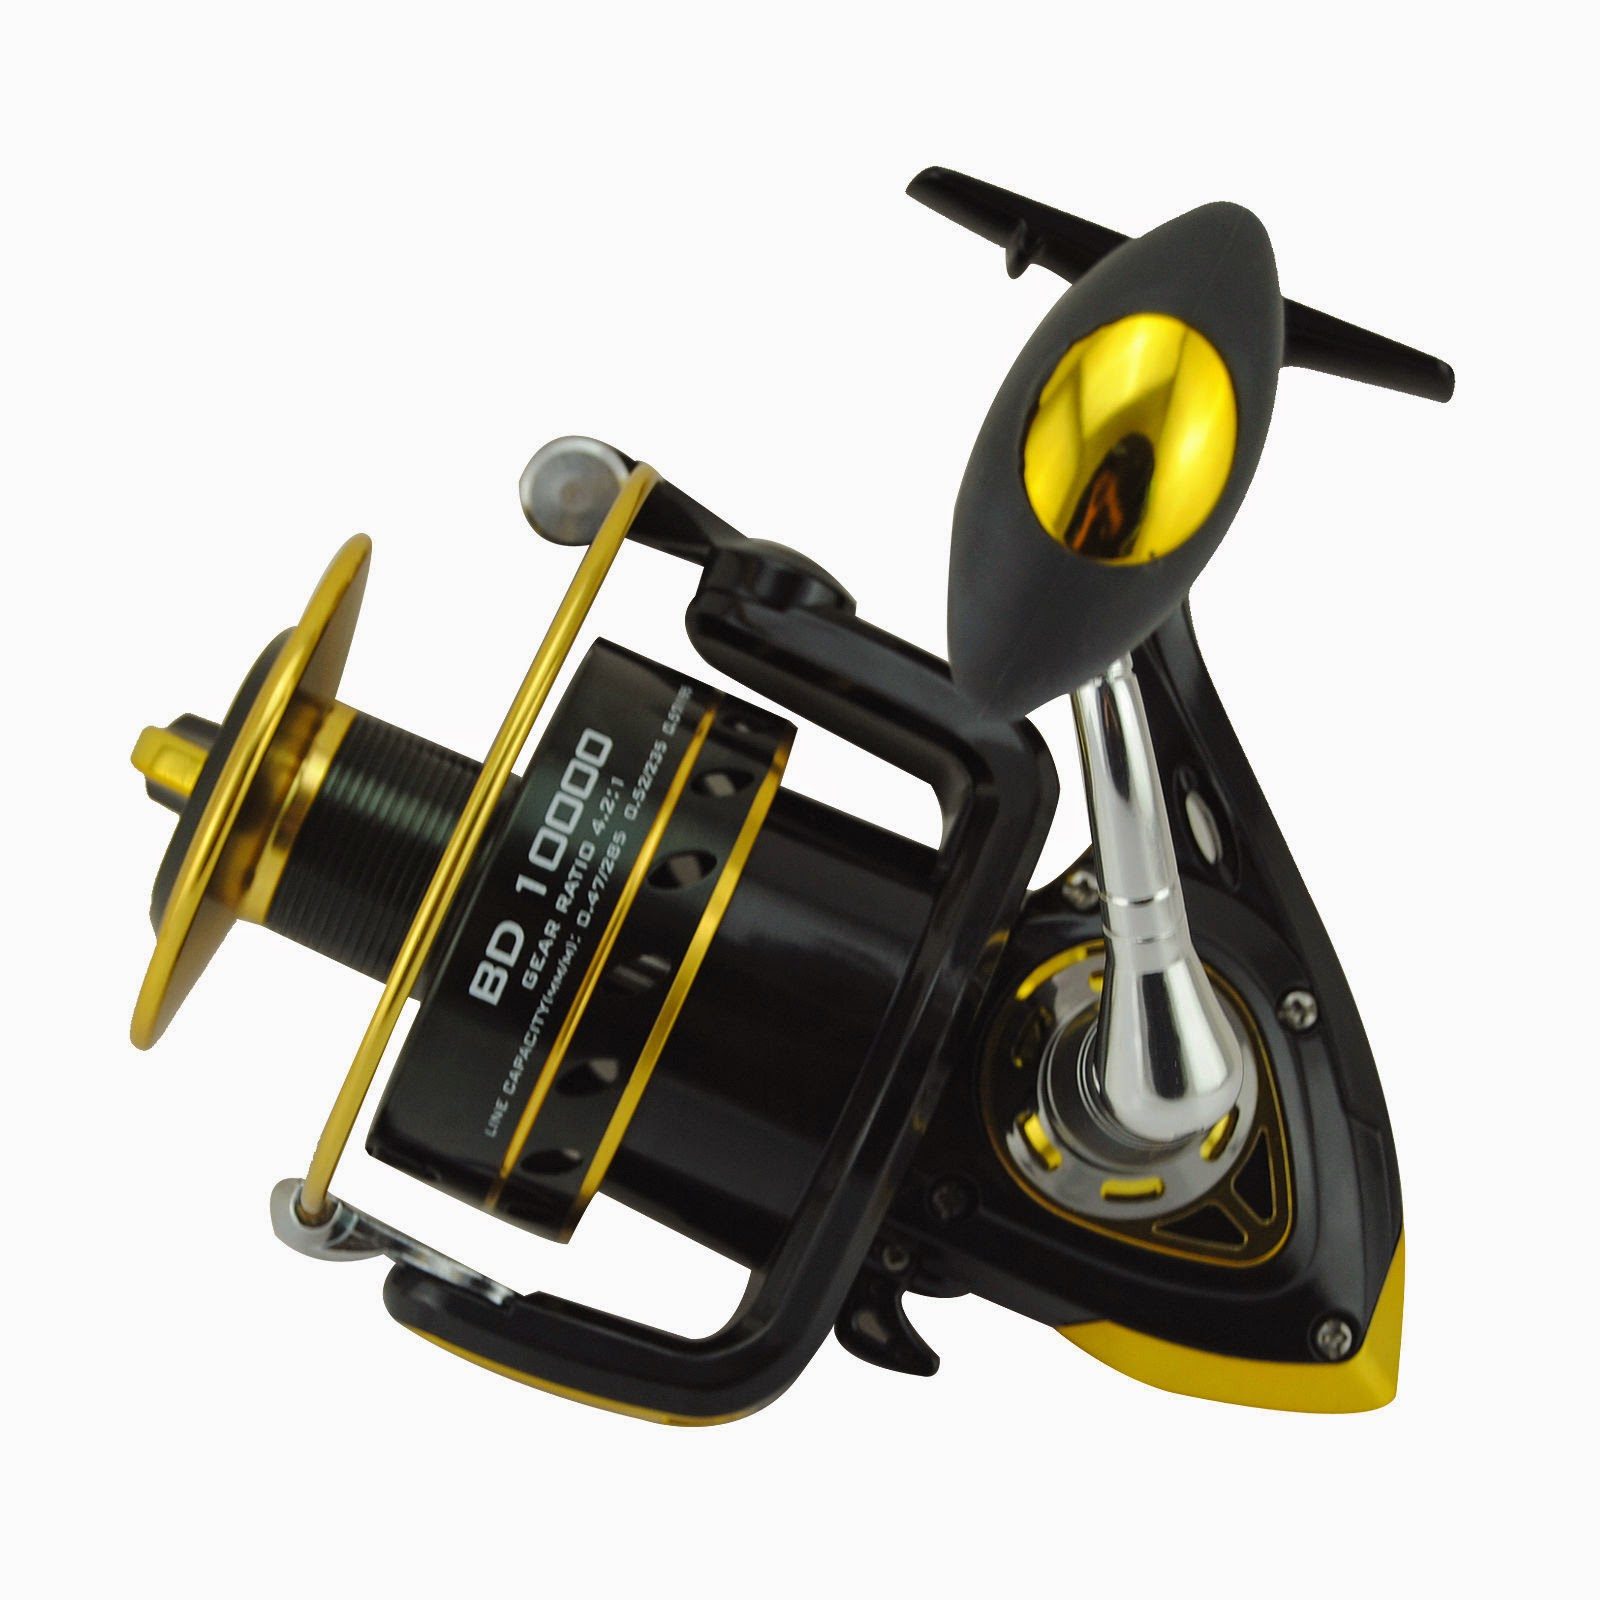 BD 10000 Heavy Duty Reel Spool10+1BB Freshwater/Saltwater Spinning Fishing Reel